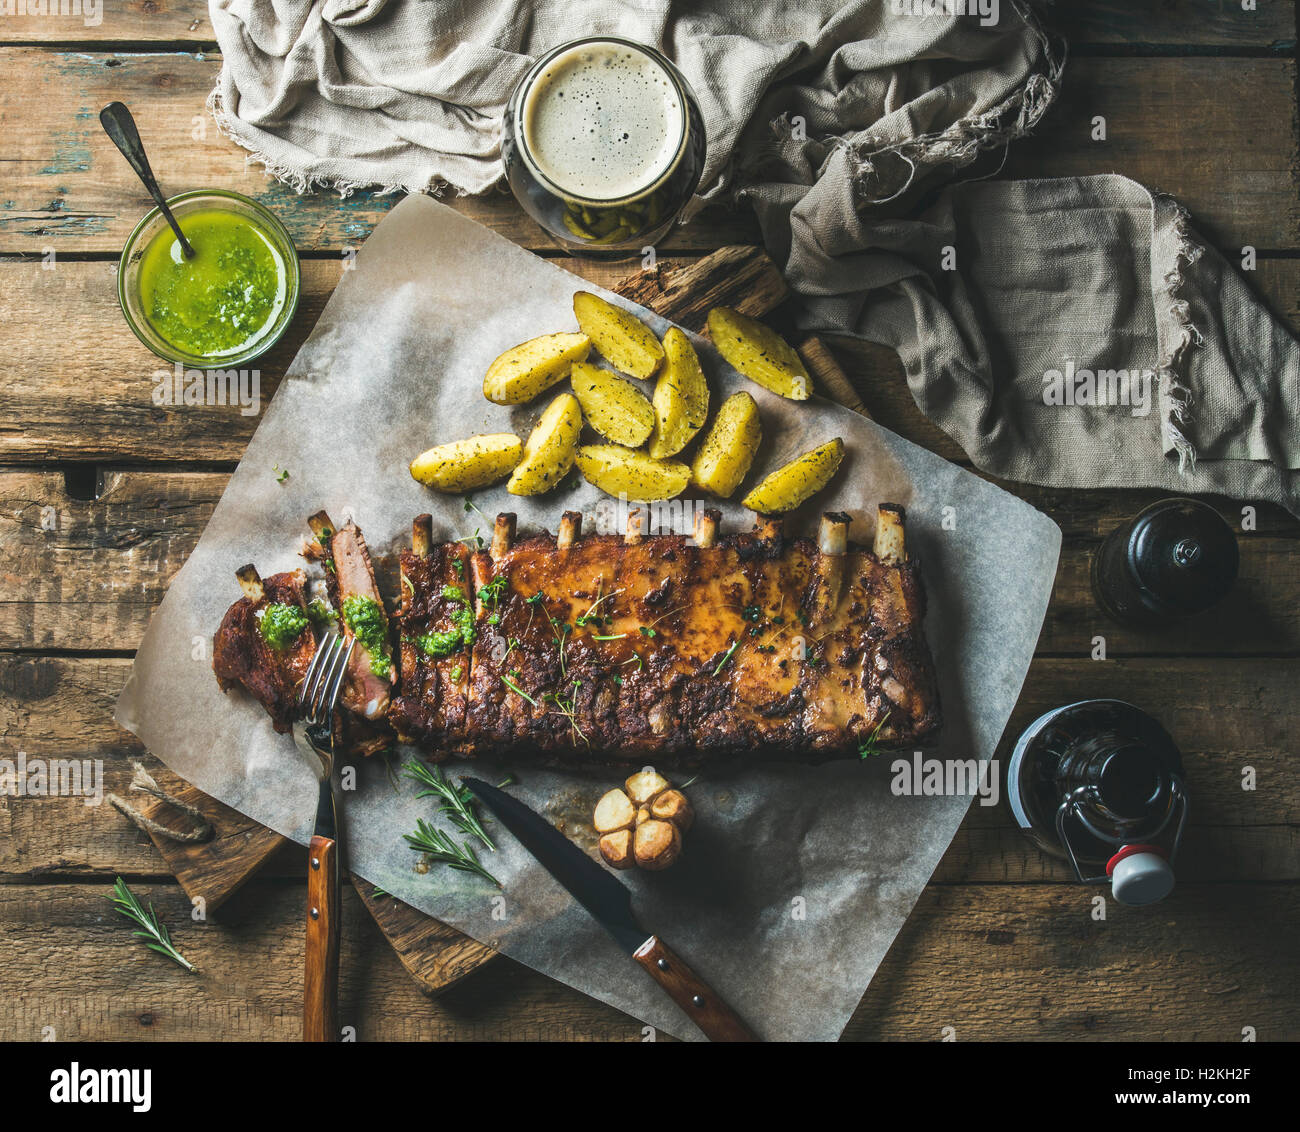 Roasted pork ribs partly cut into pieces with garlic, rosemary, green herb sauce, fried potato and dark beer on - Stock Image